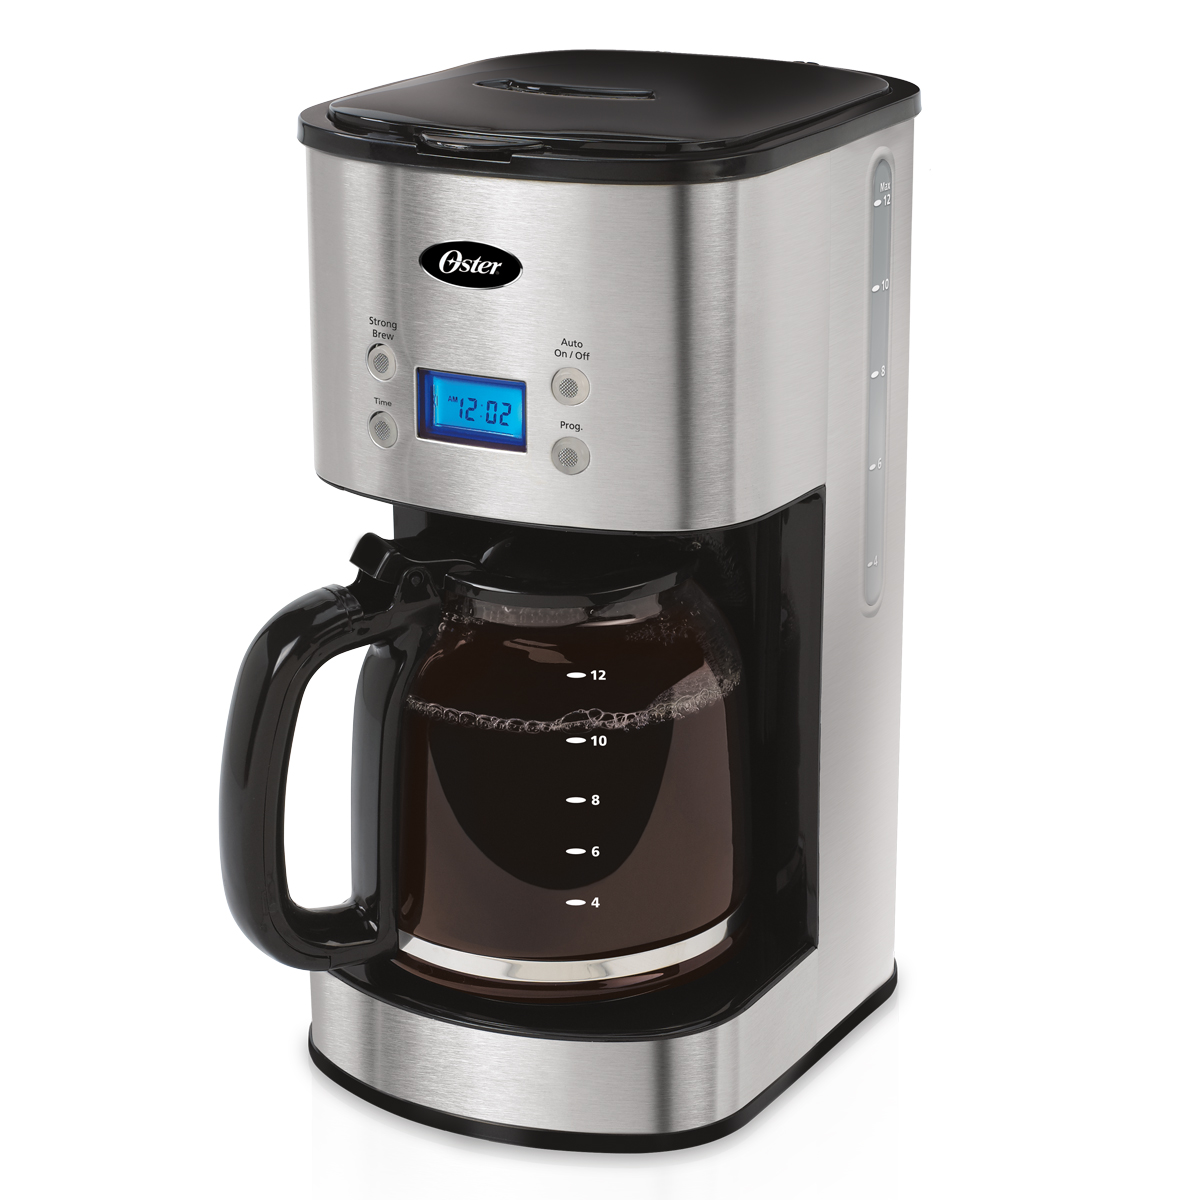 6 Cup Coffee Maker Programmable : Oster 12 Cup Programmable Coffee Maker BVST-JBXSS41 eBay